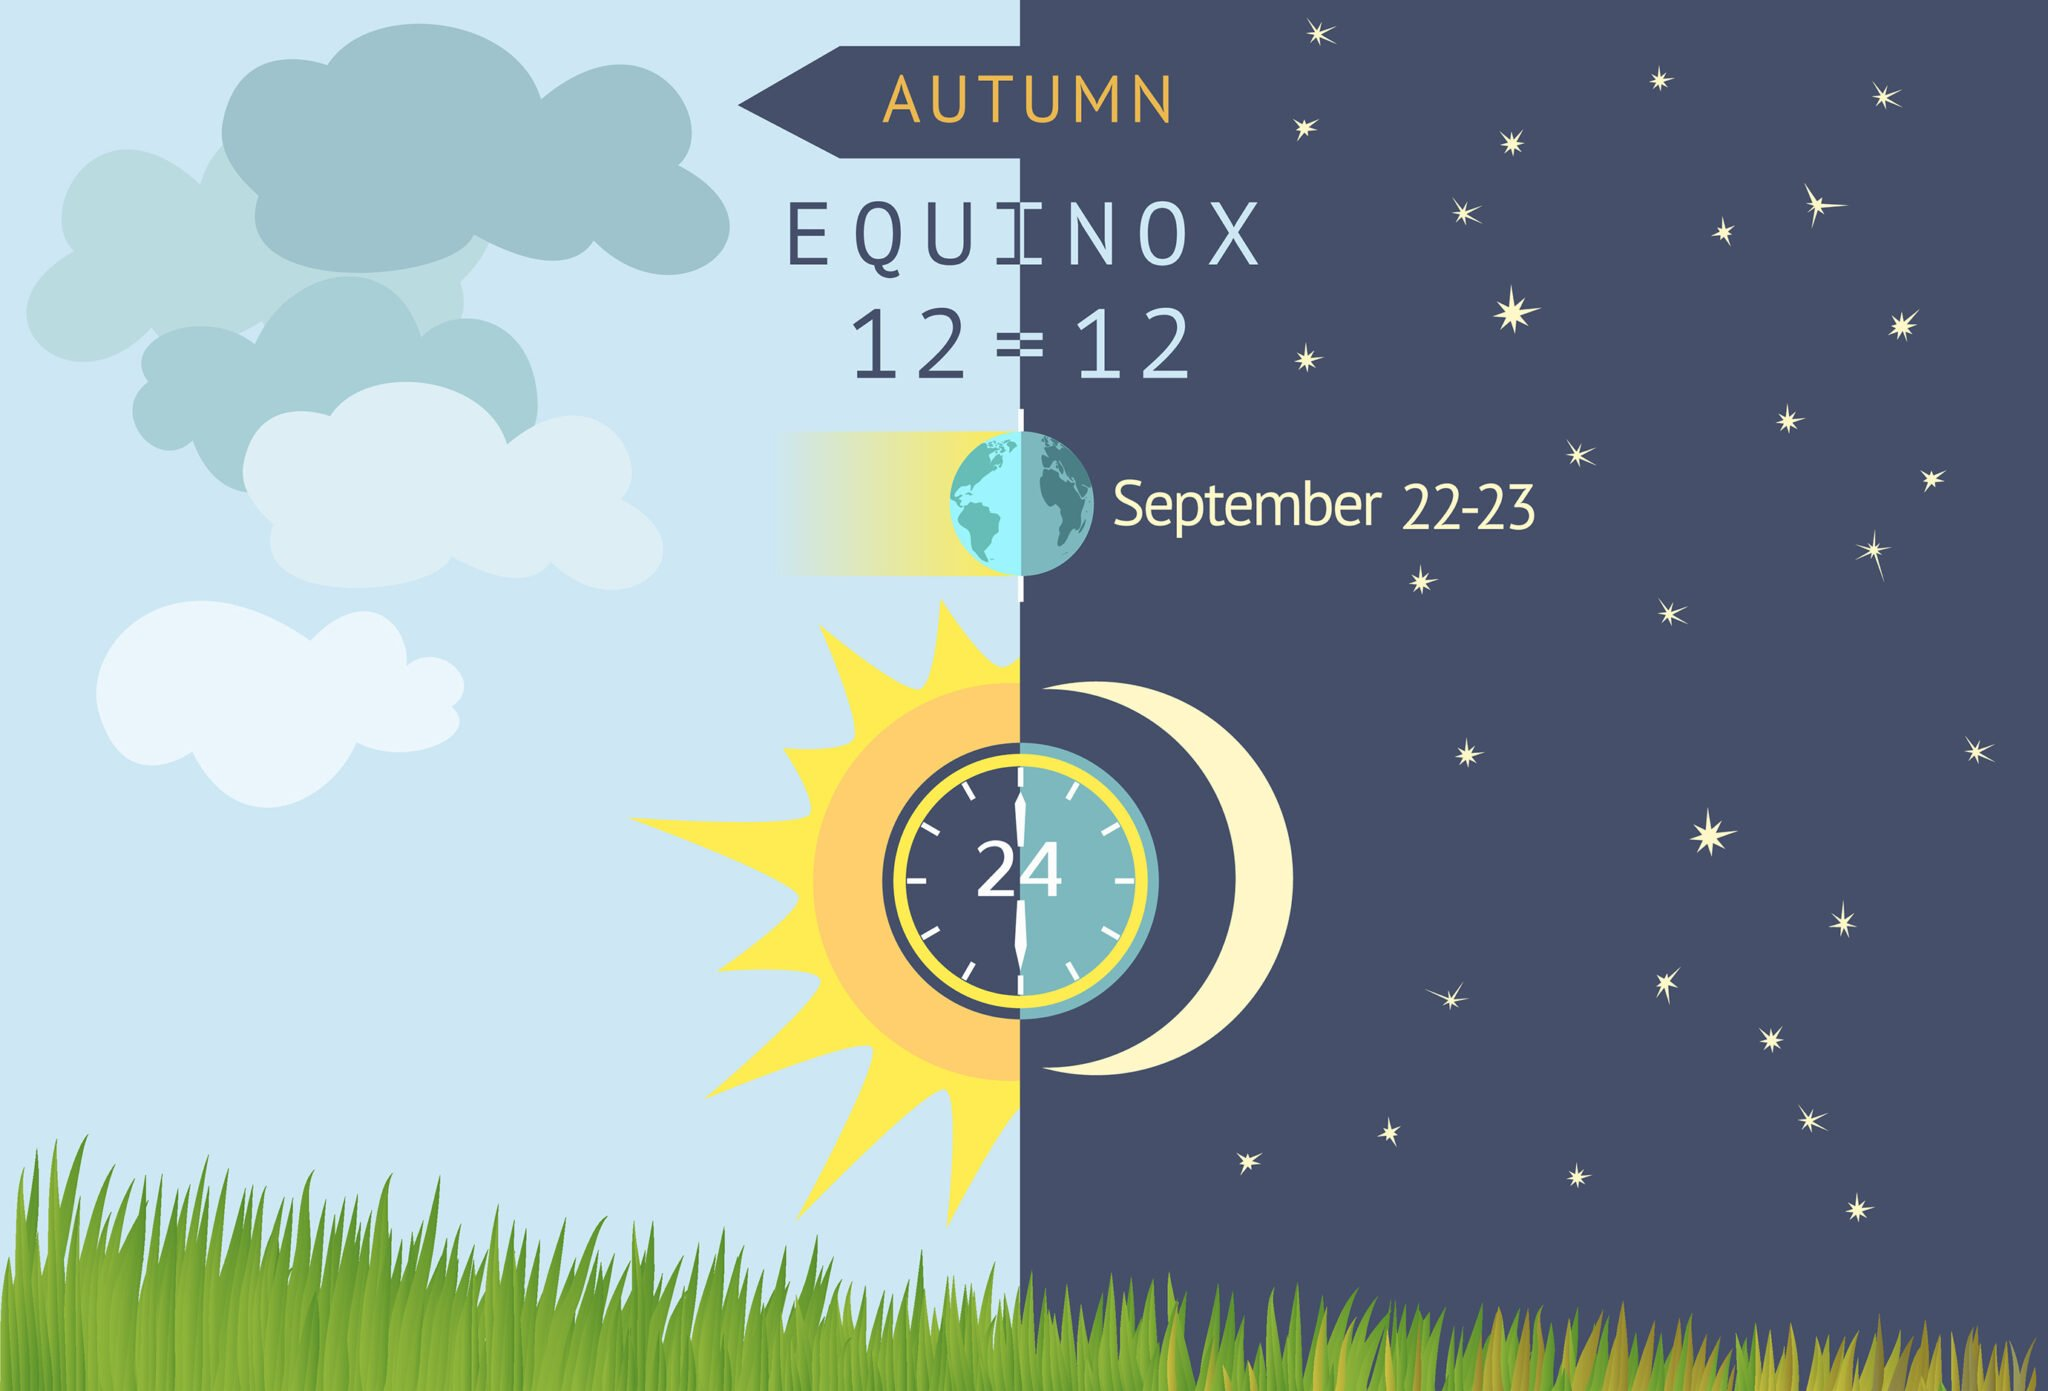 equinox graphic scaled